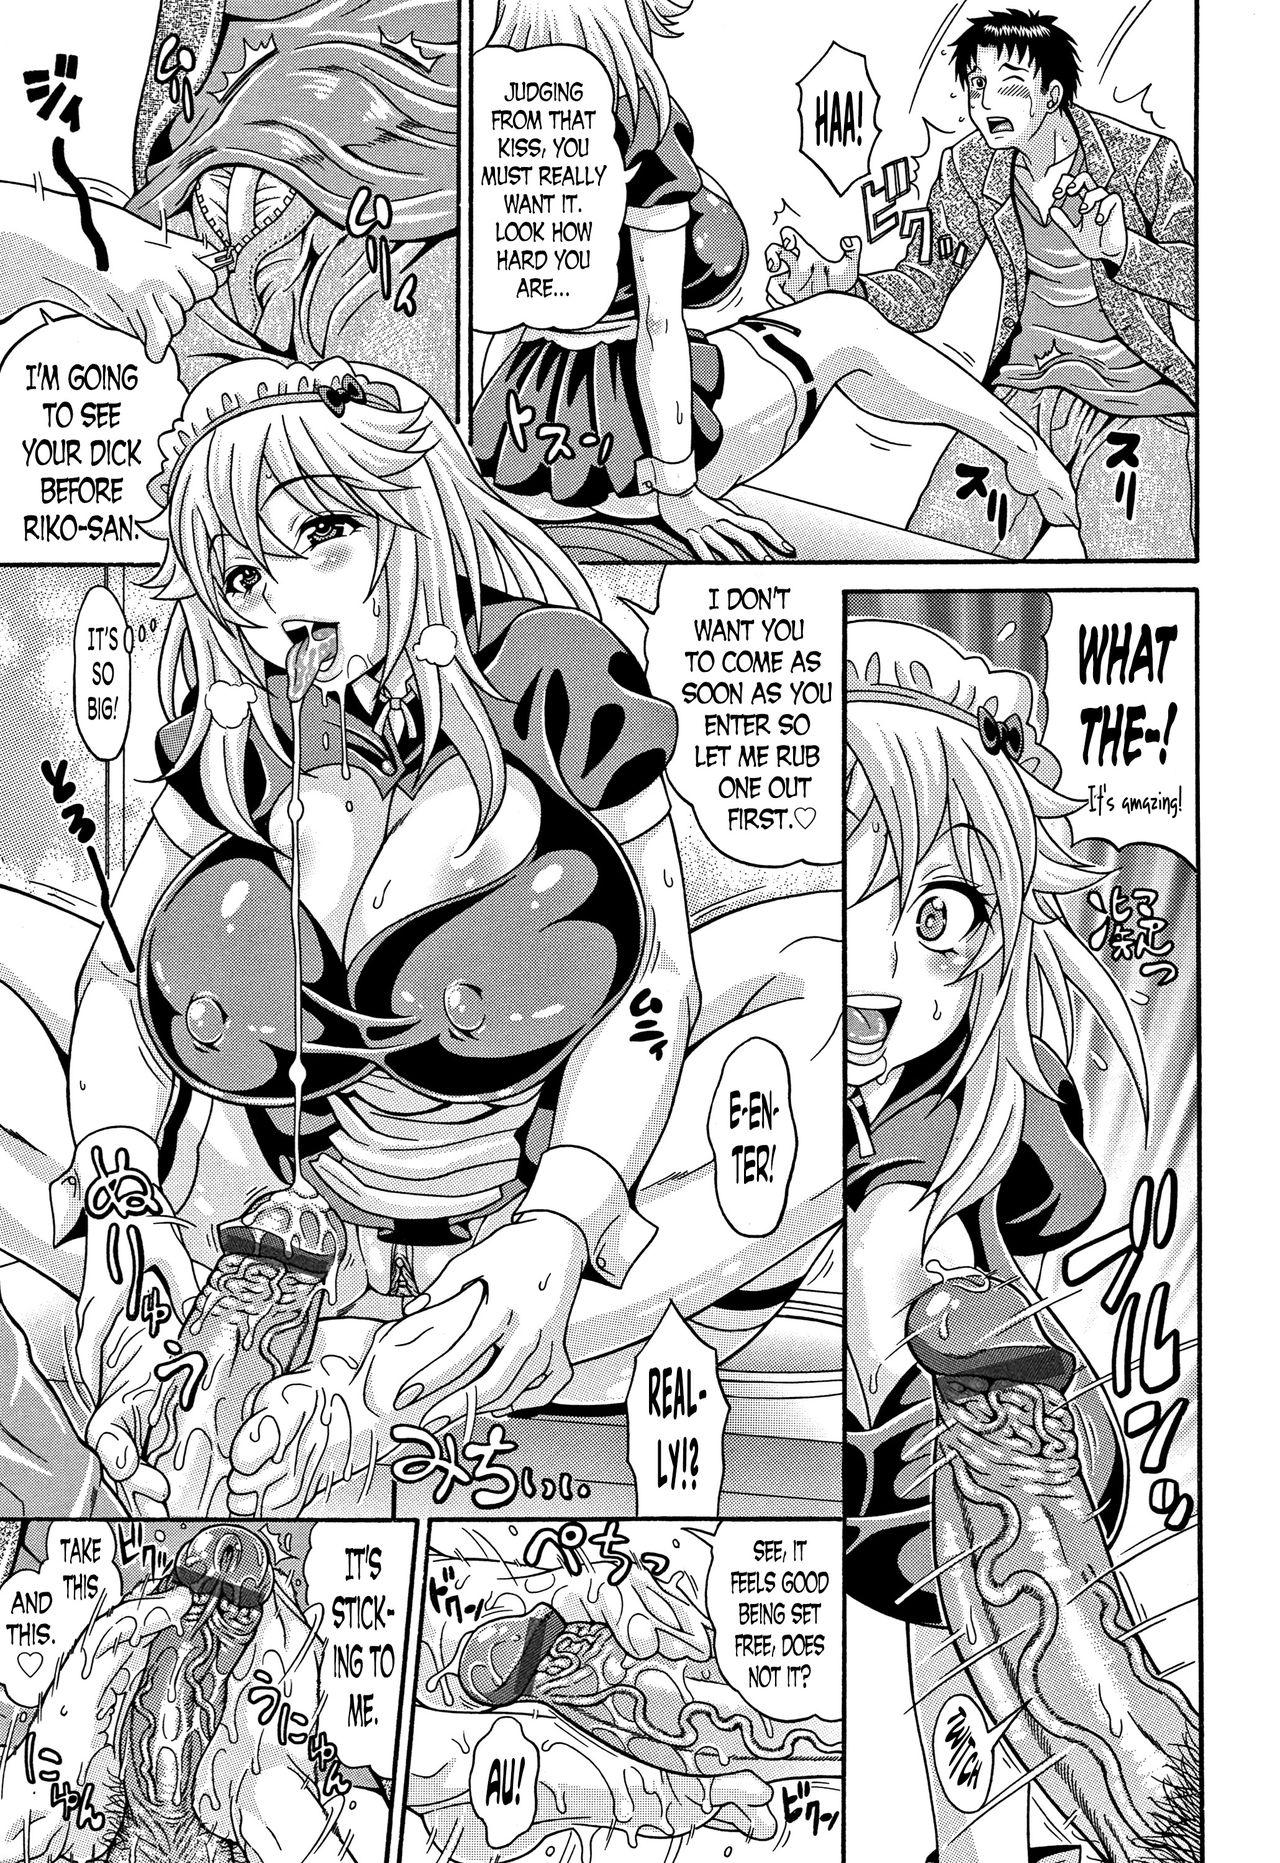 [Andou Hiroyuki] Mamire Chichi - Sticky Tits Feel Hot All Over. Ch.1-7 [English] [doujin-moe.us] 79